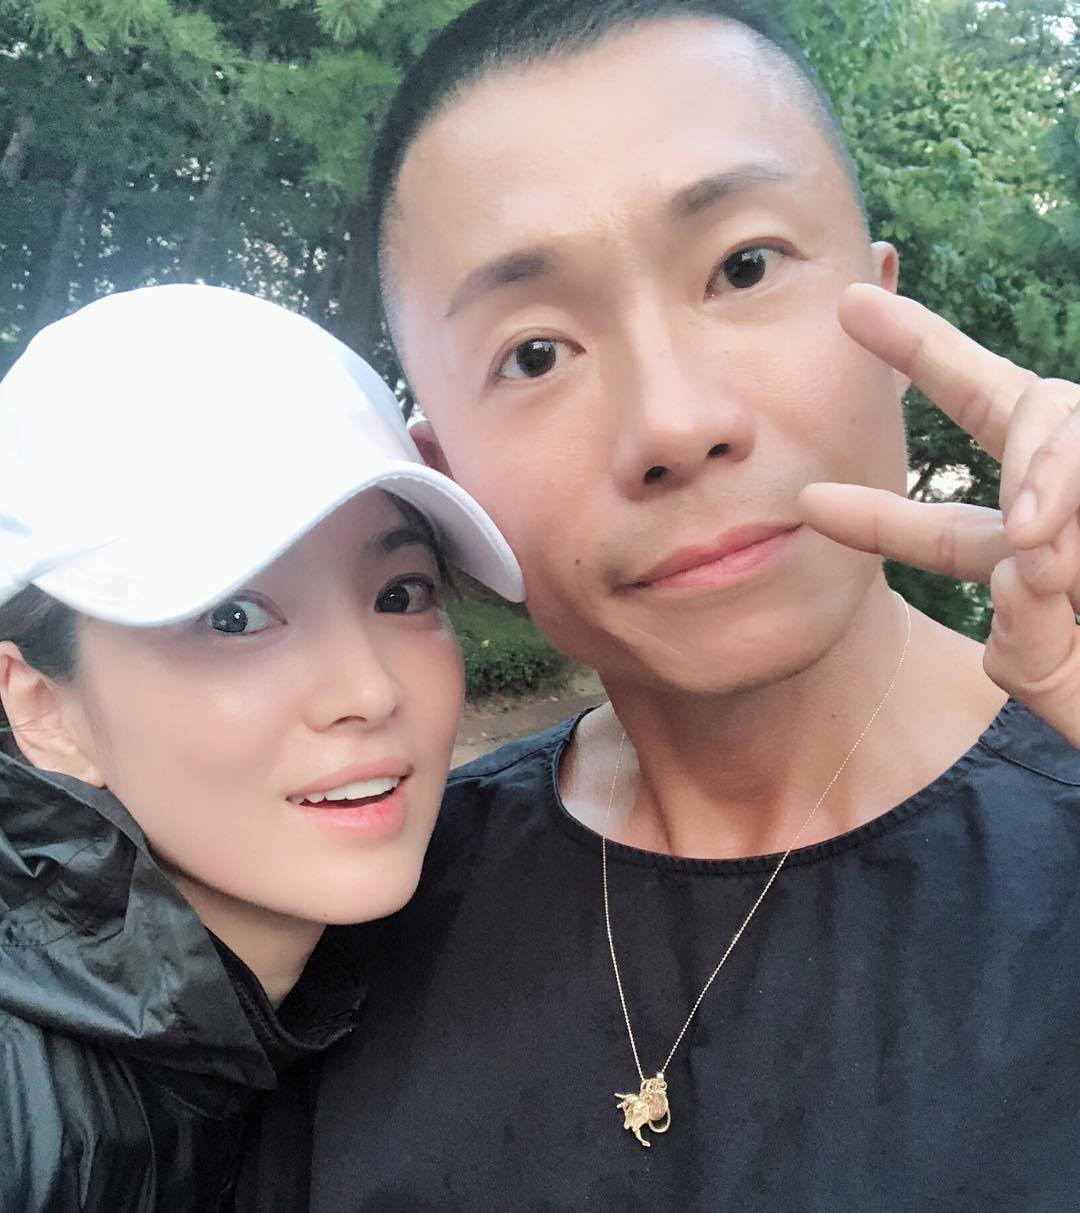 Return as husband and wife Singing: come back after 1 year of marriage, choose the block of tvN, now lose weight massively - photo 2.